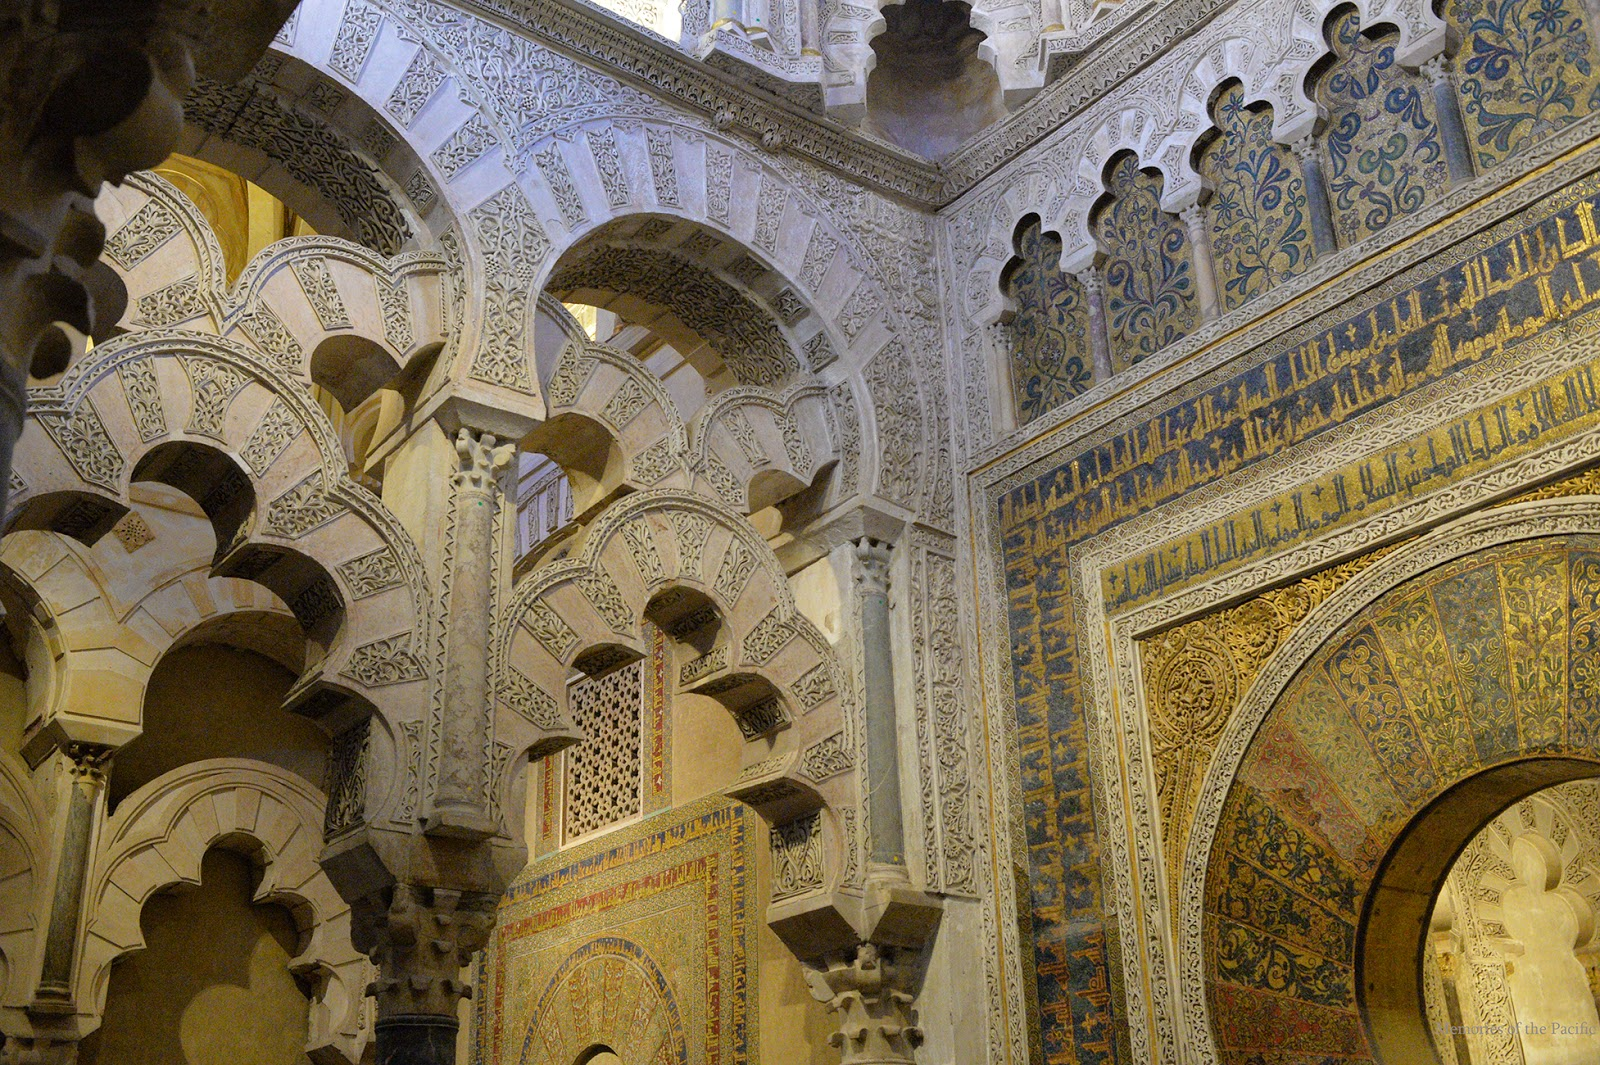 mosque cathedral mezquita catedral cordoba spain españa